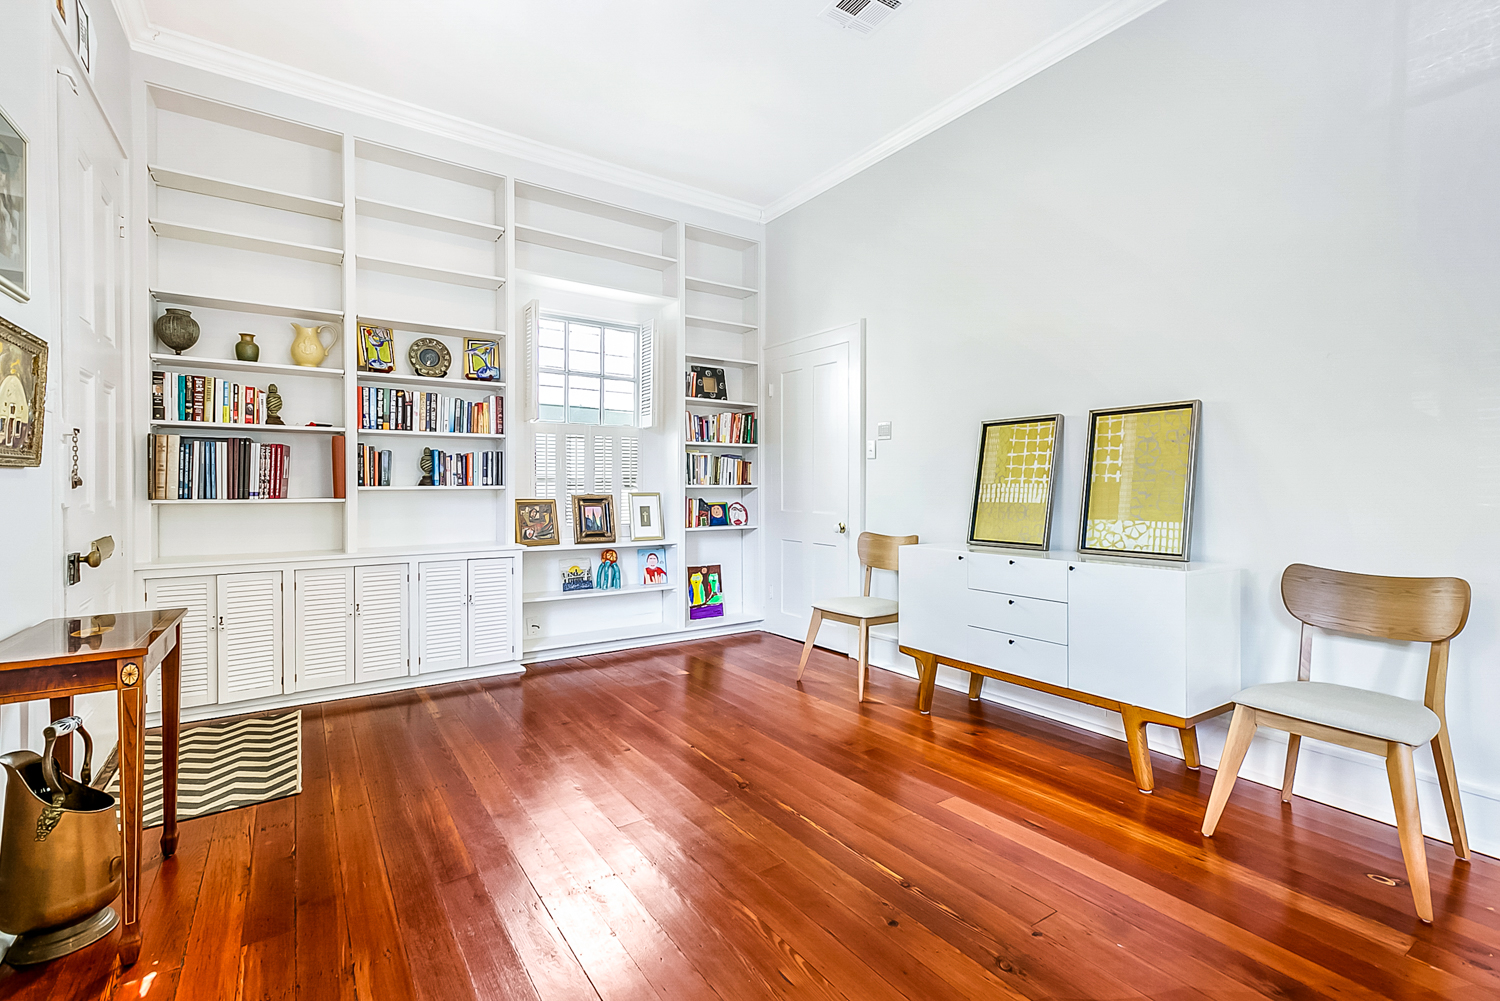 Garden District, House, 2 beds, 2.0 baths, $5000 per month New Orleans Rental - devie image_2